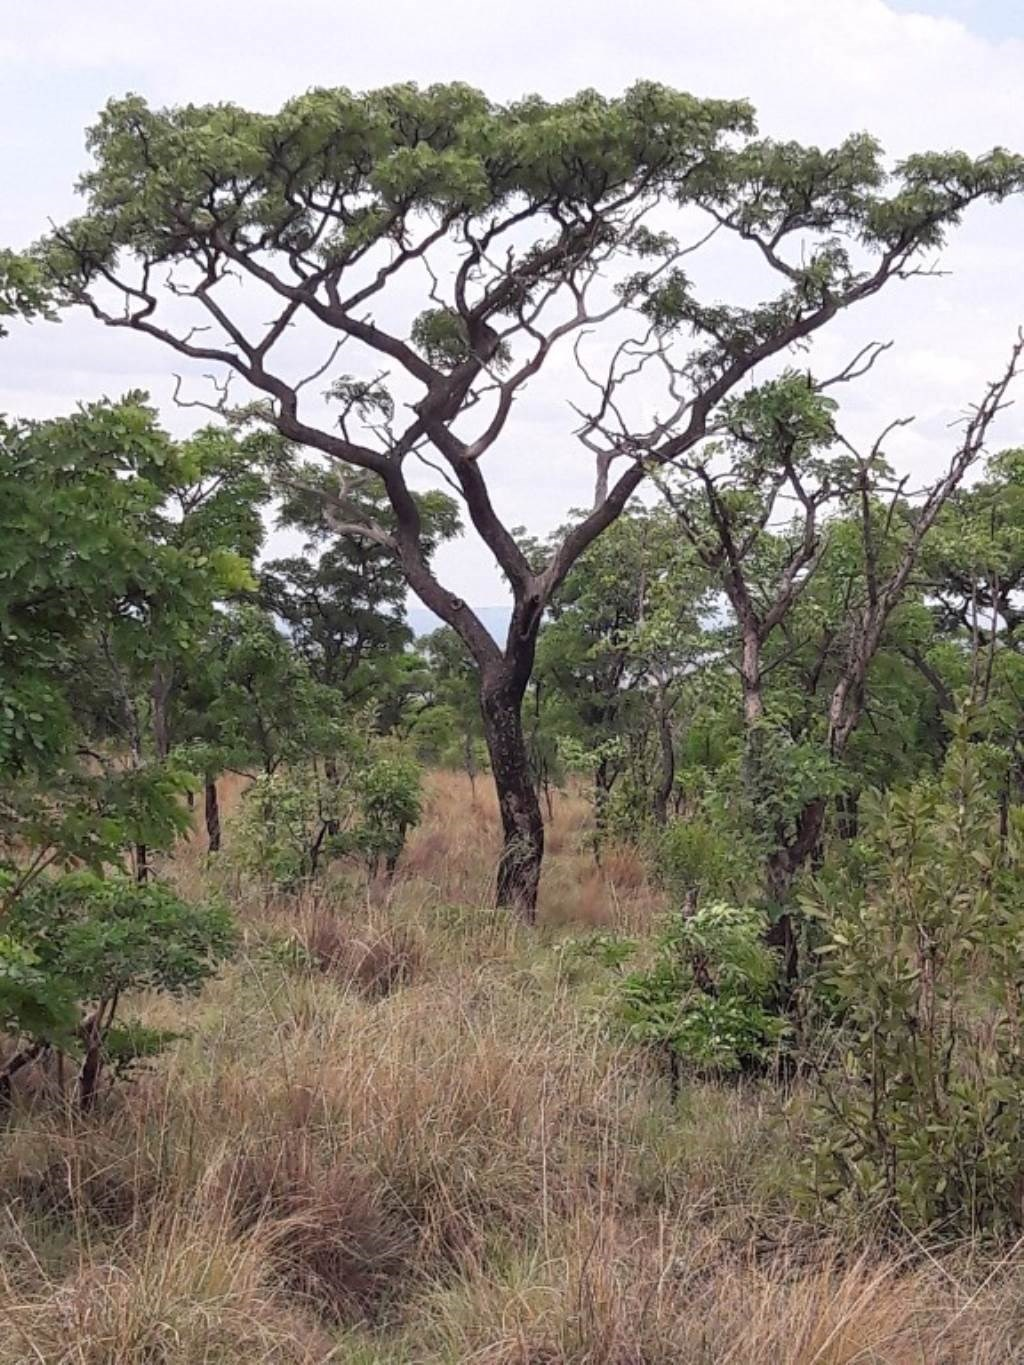 Vacant Land for Sale in Vaalwater